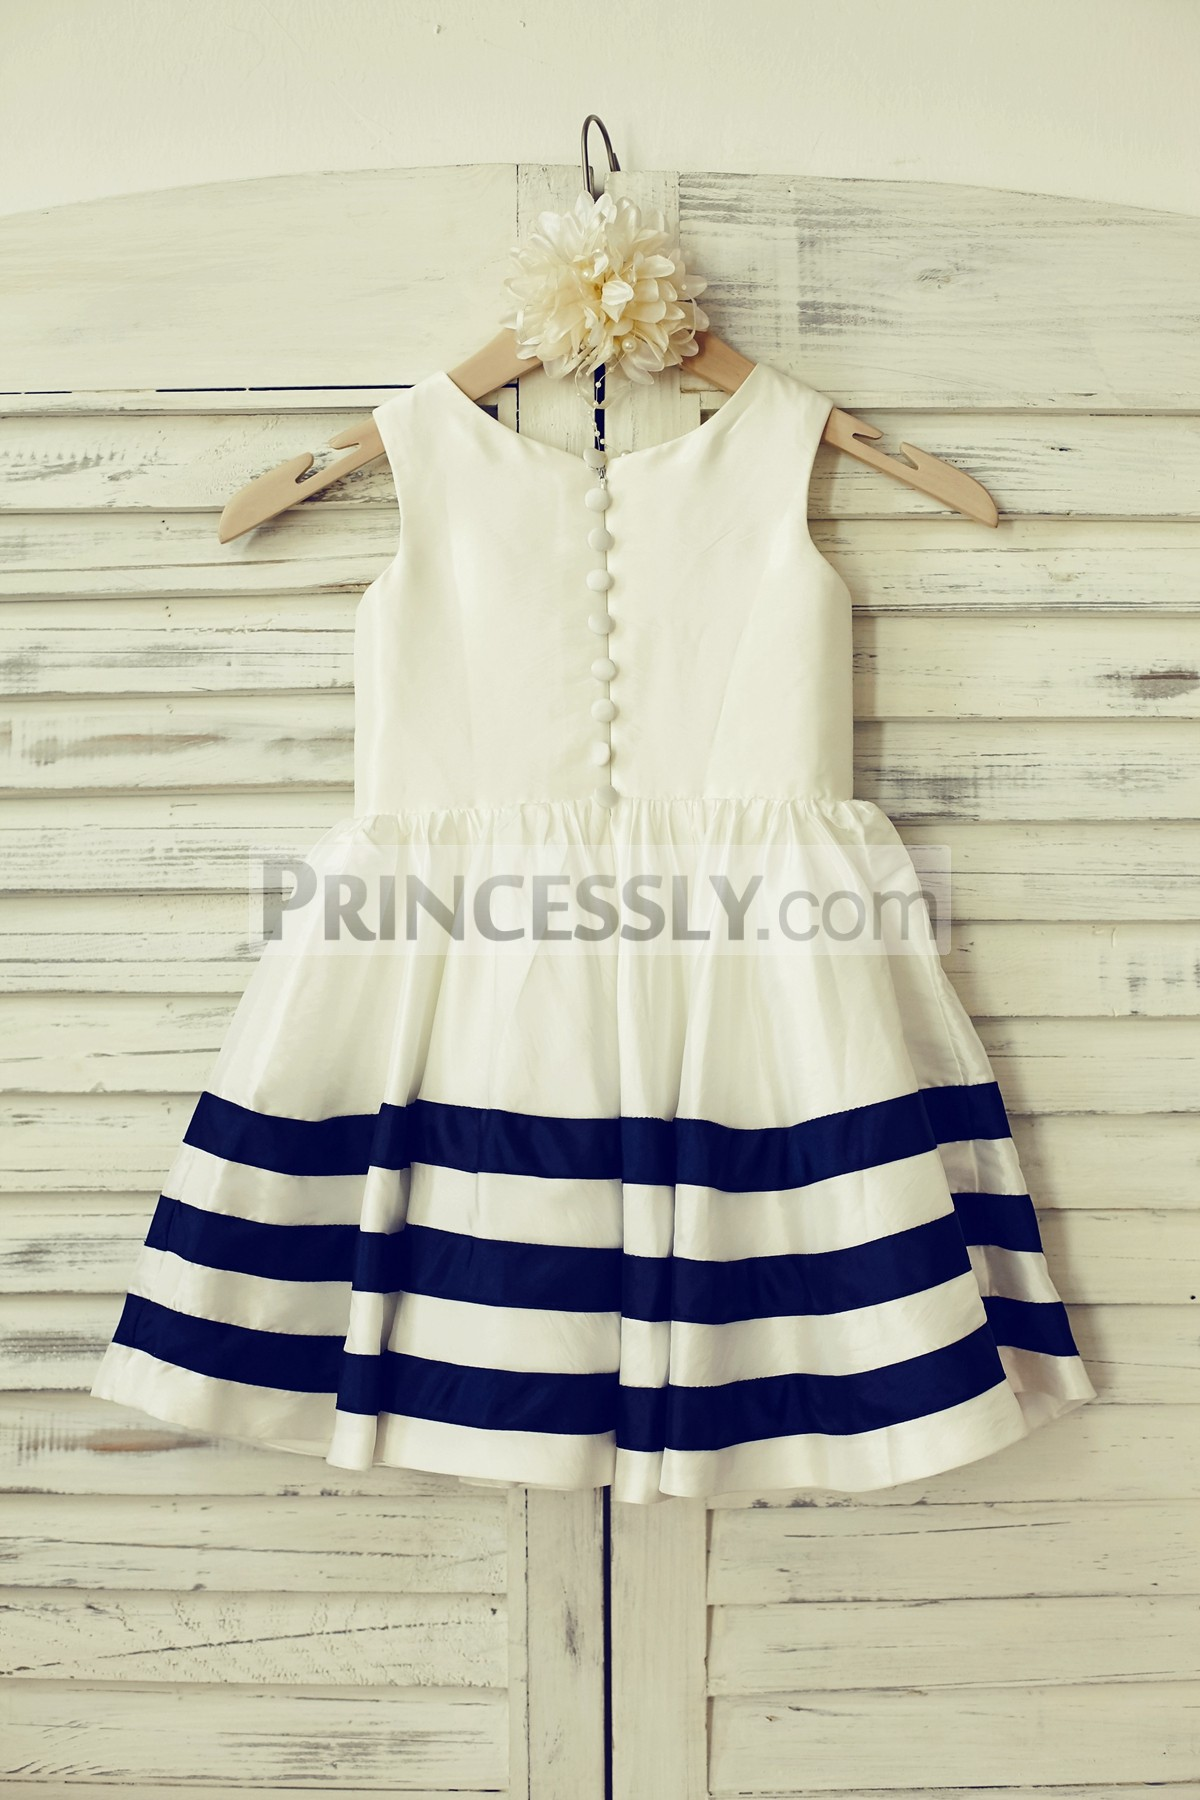 Cloth buttons along zipper back taffeta wedding baby girl dress